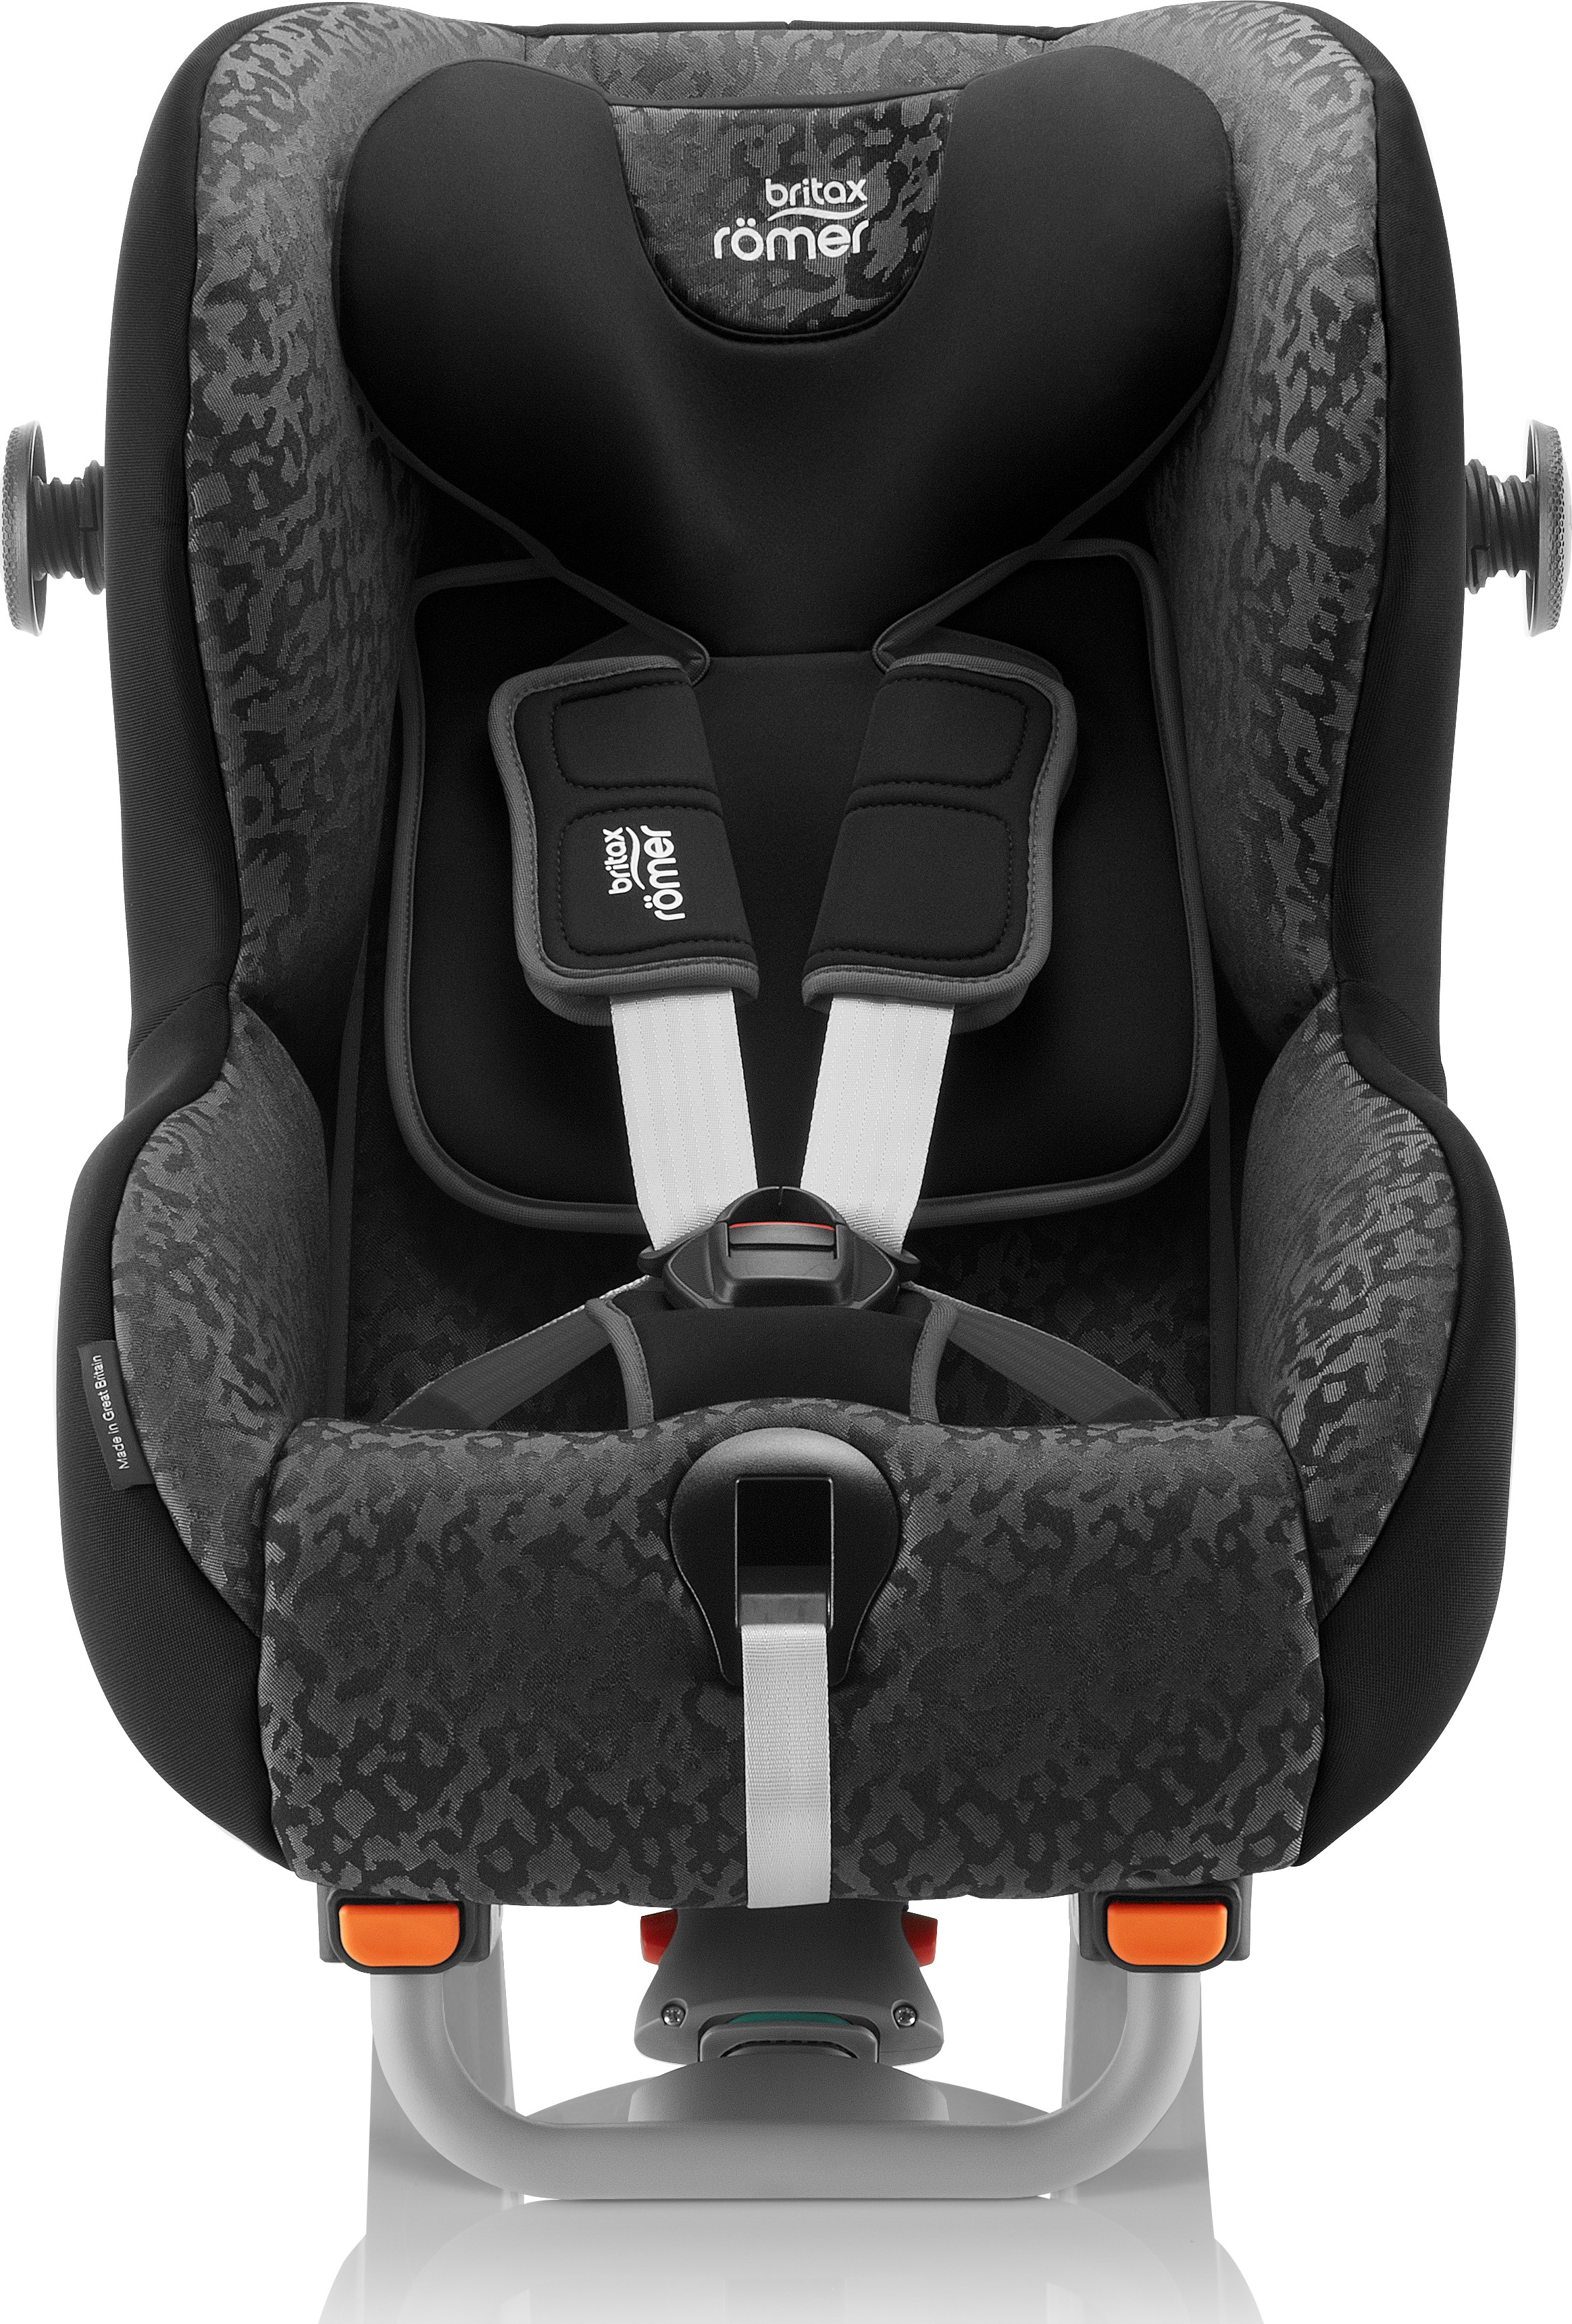 britax romer max-way plus Mystic Black